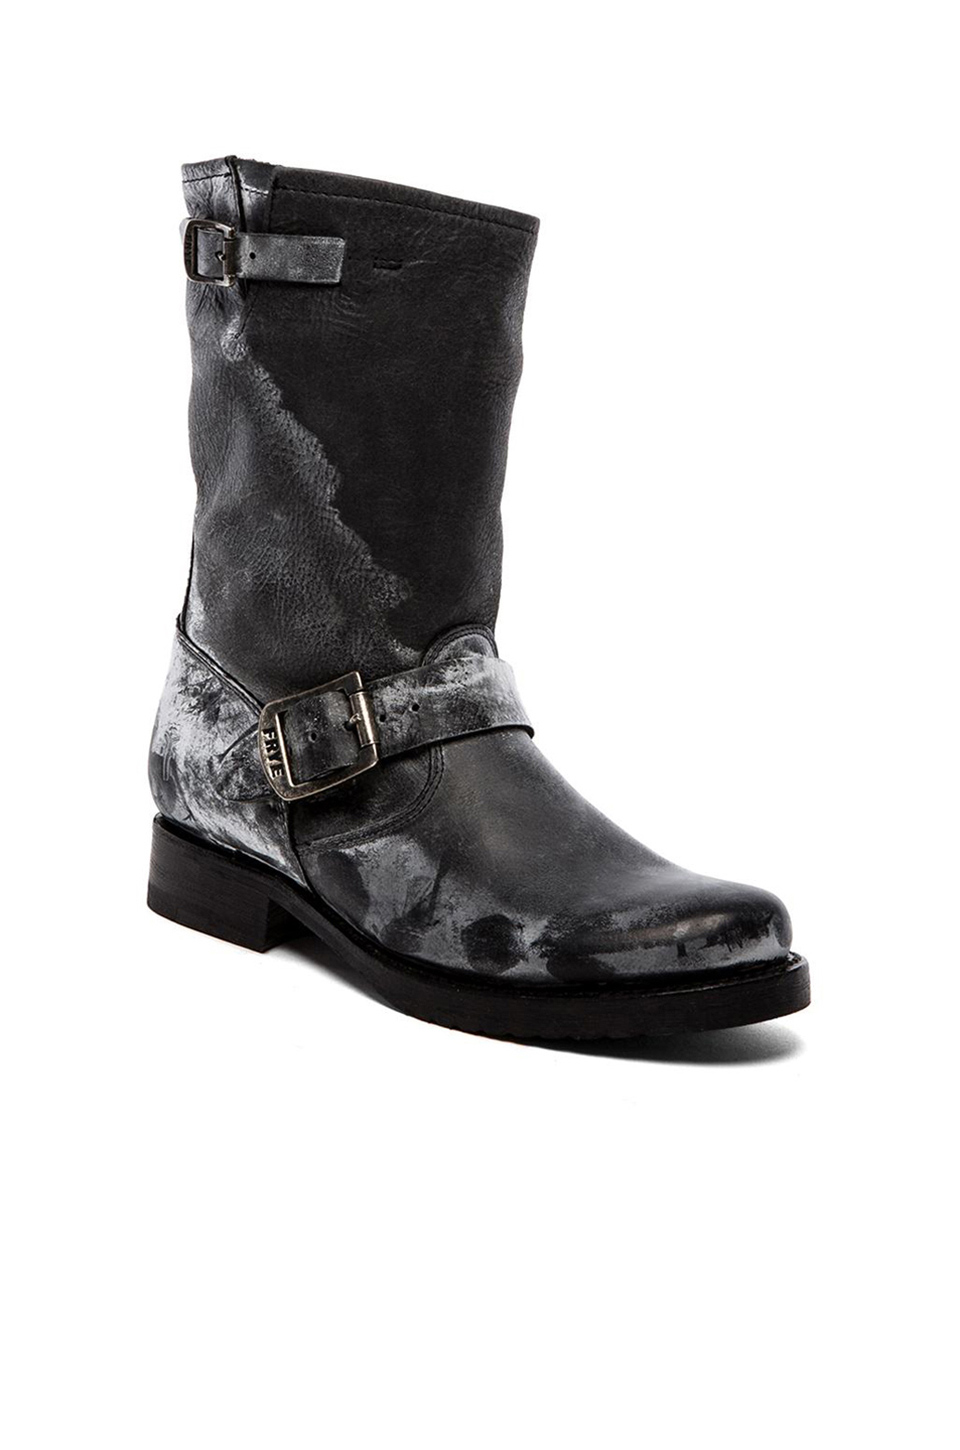 Frye Veronica Short Boot in Black